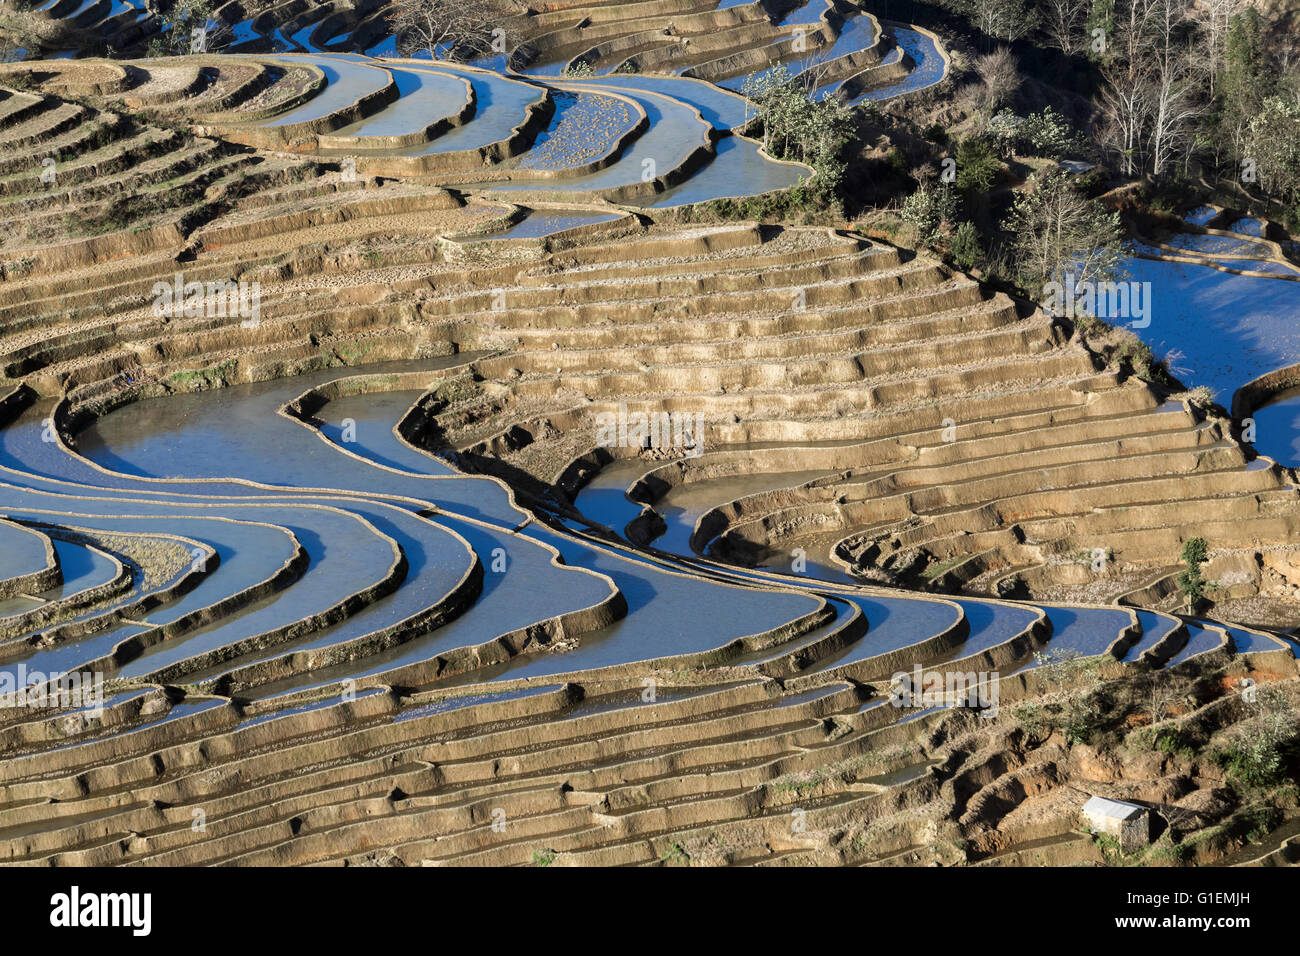 Curved rice terraces reflecting blue sky, Bada, Yuanyang County, Yunnan Province, China - Stock Image